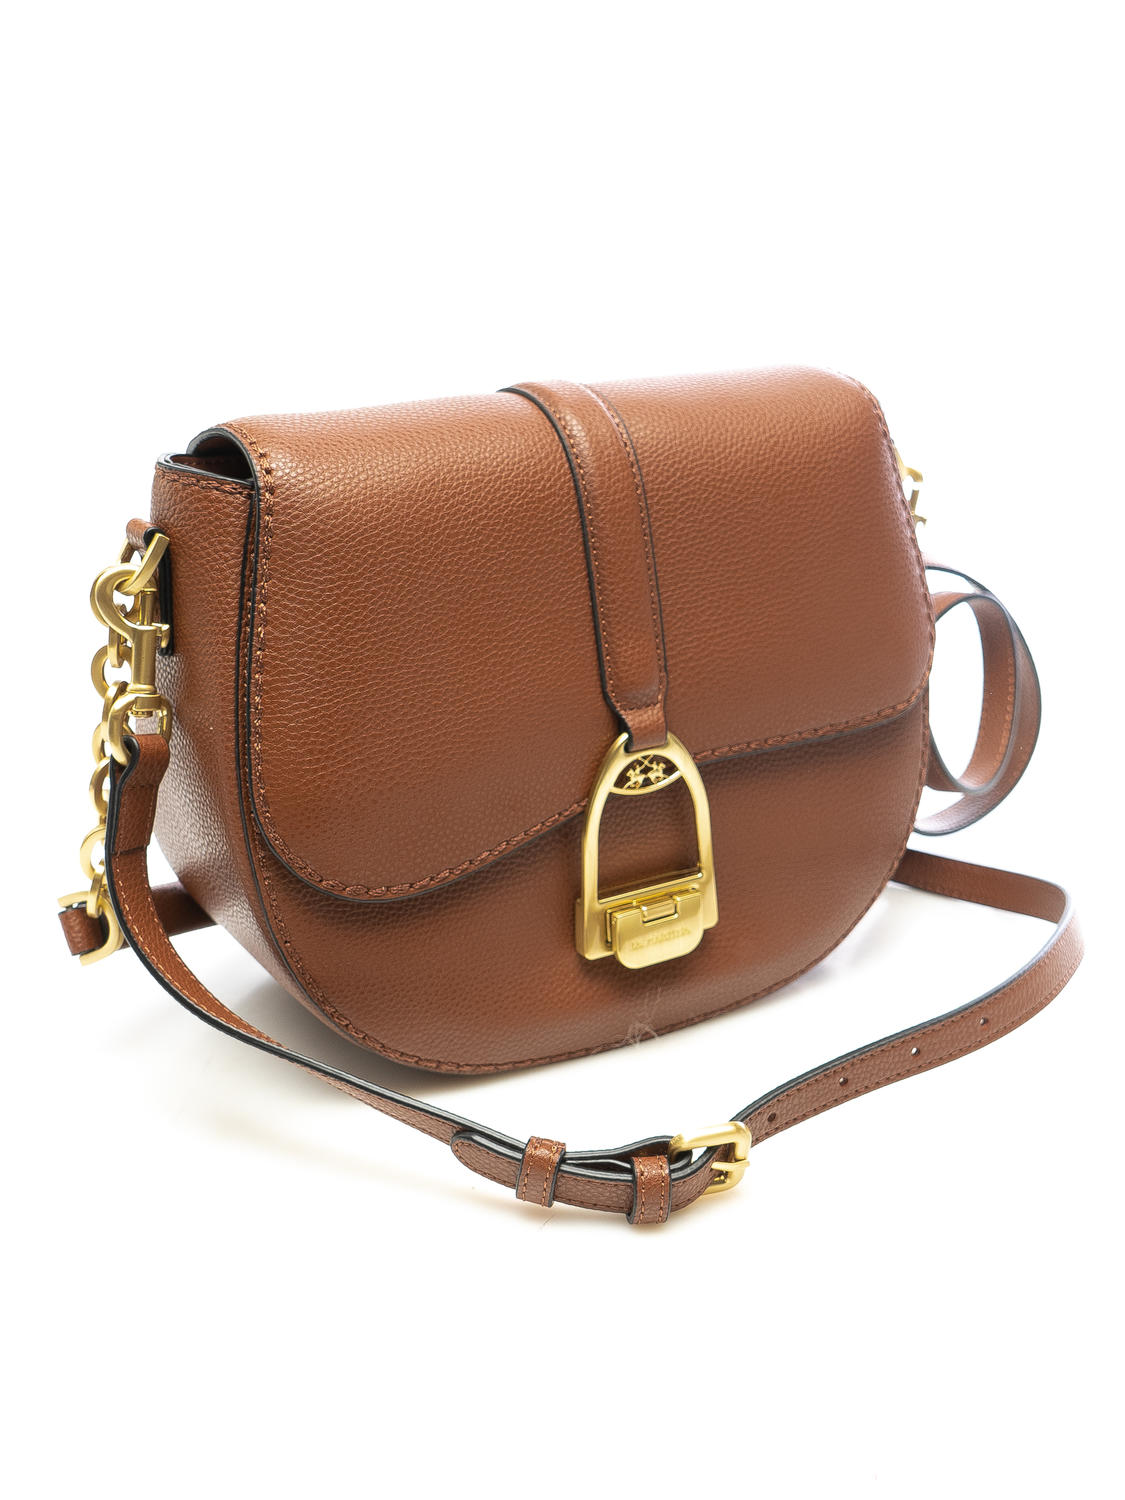 Women's Bags -  ADELINA Mini shoulder bag